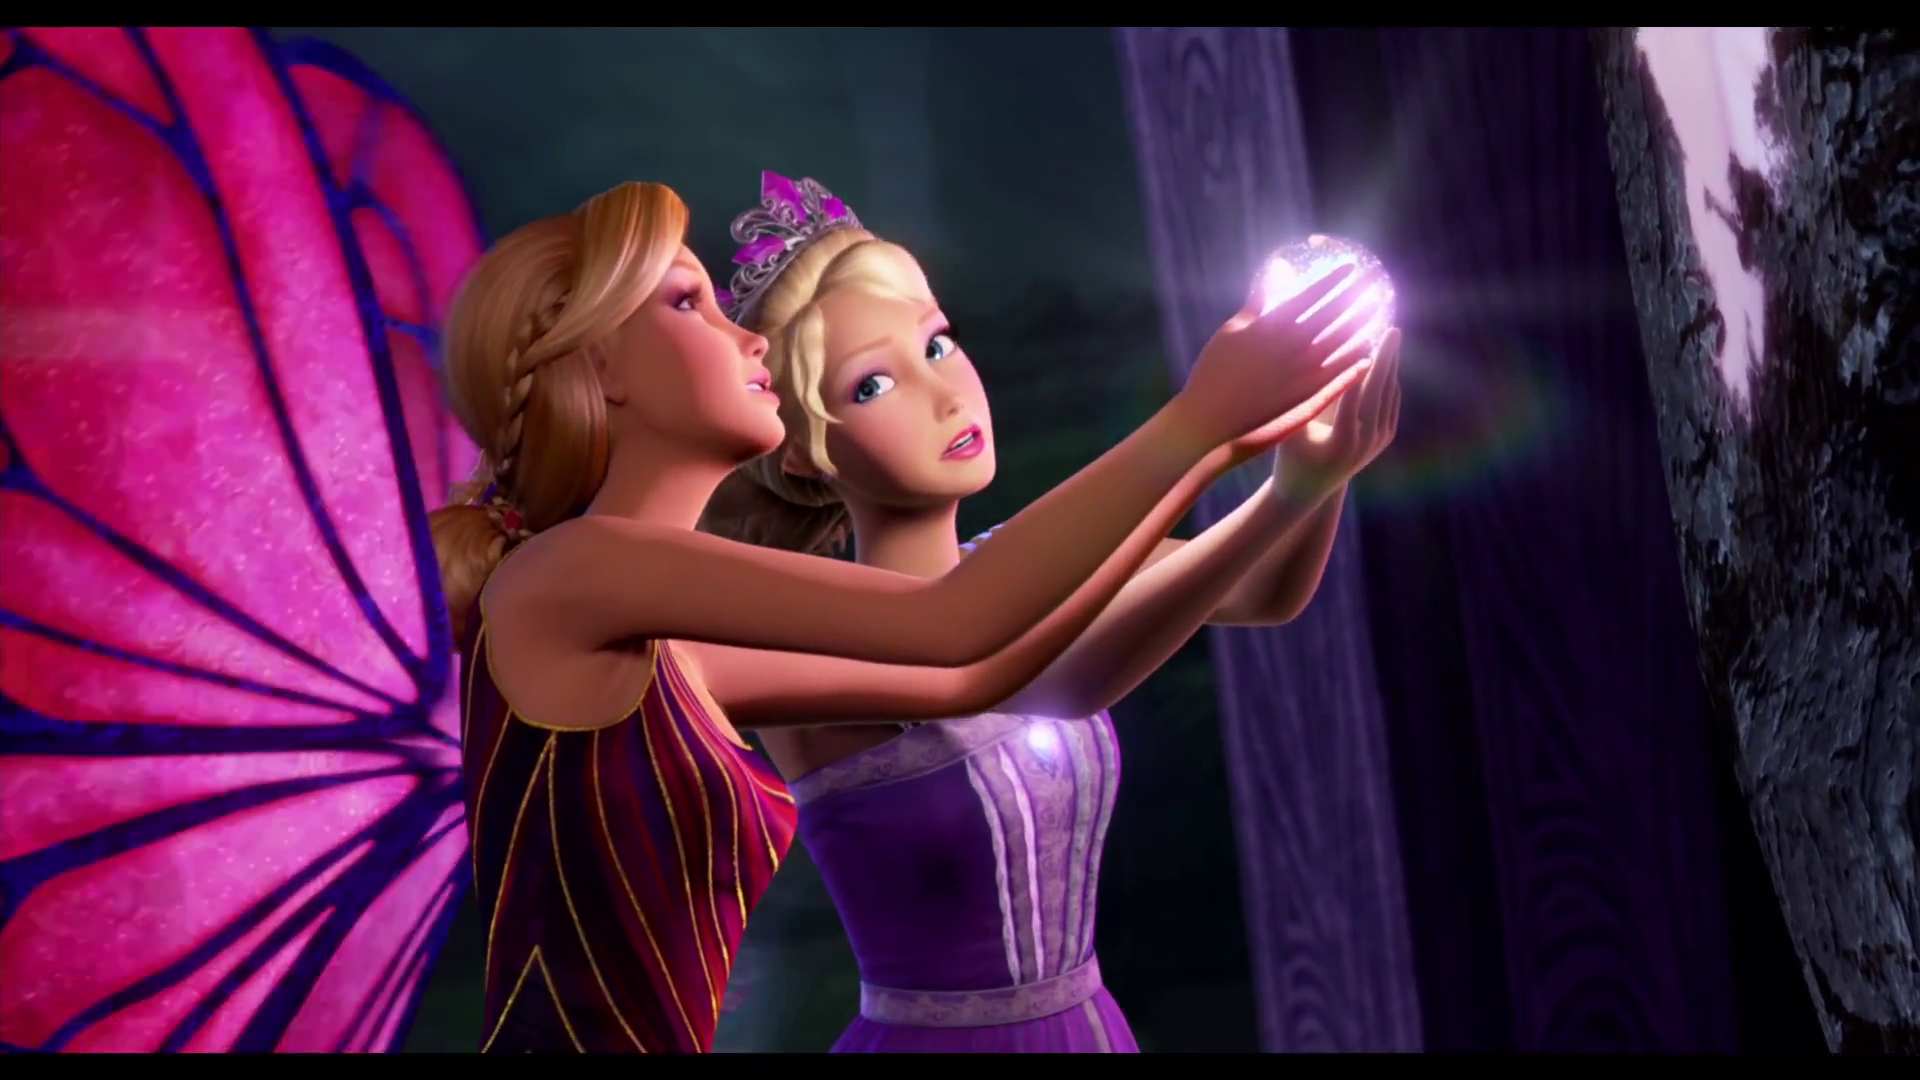 Barbie Mariposa and Fairy Princess HQ images